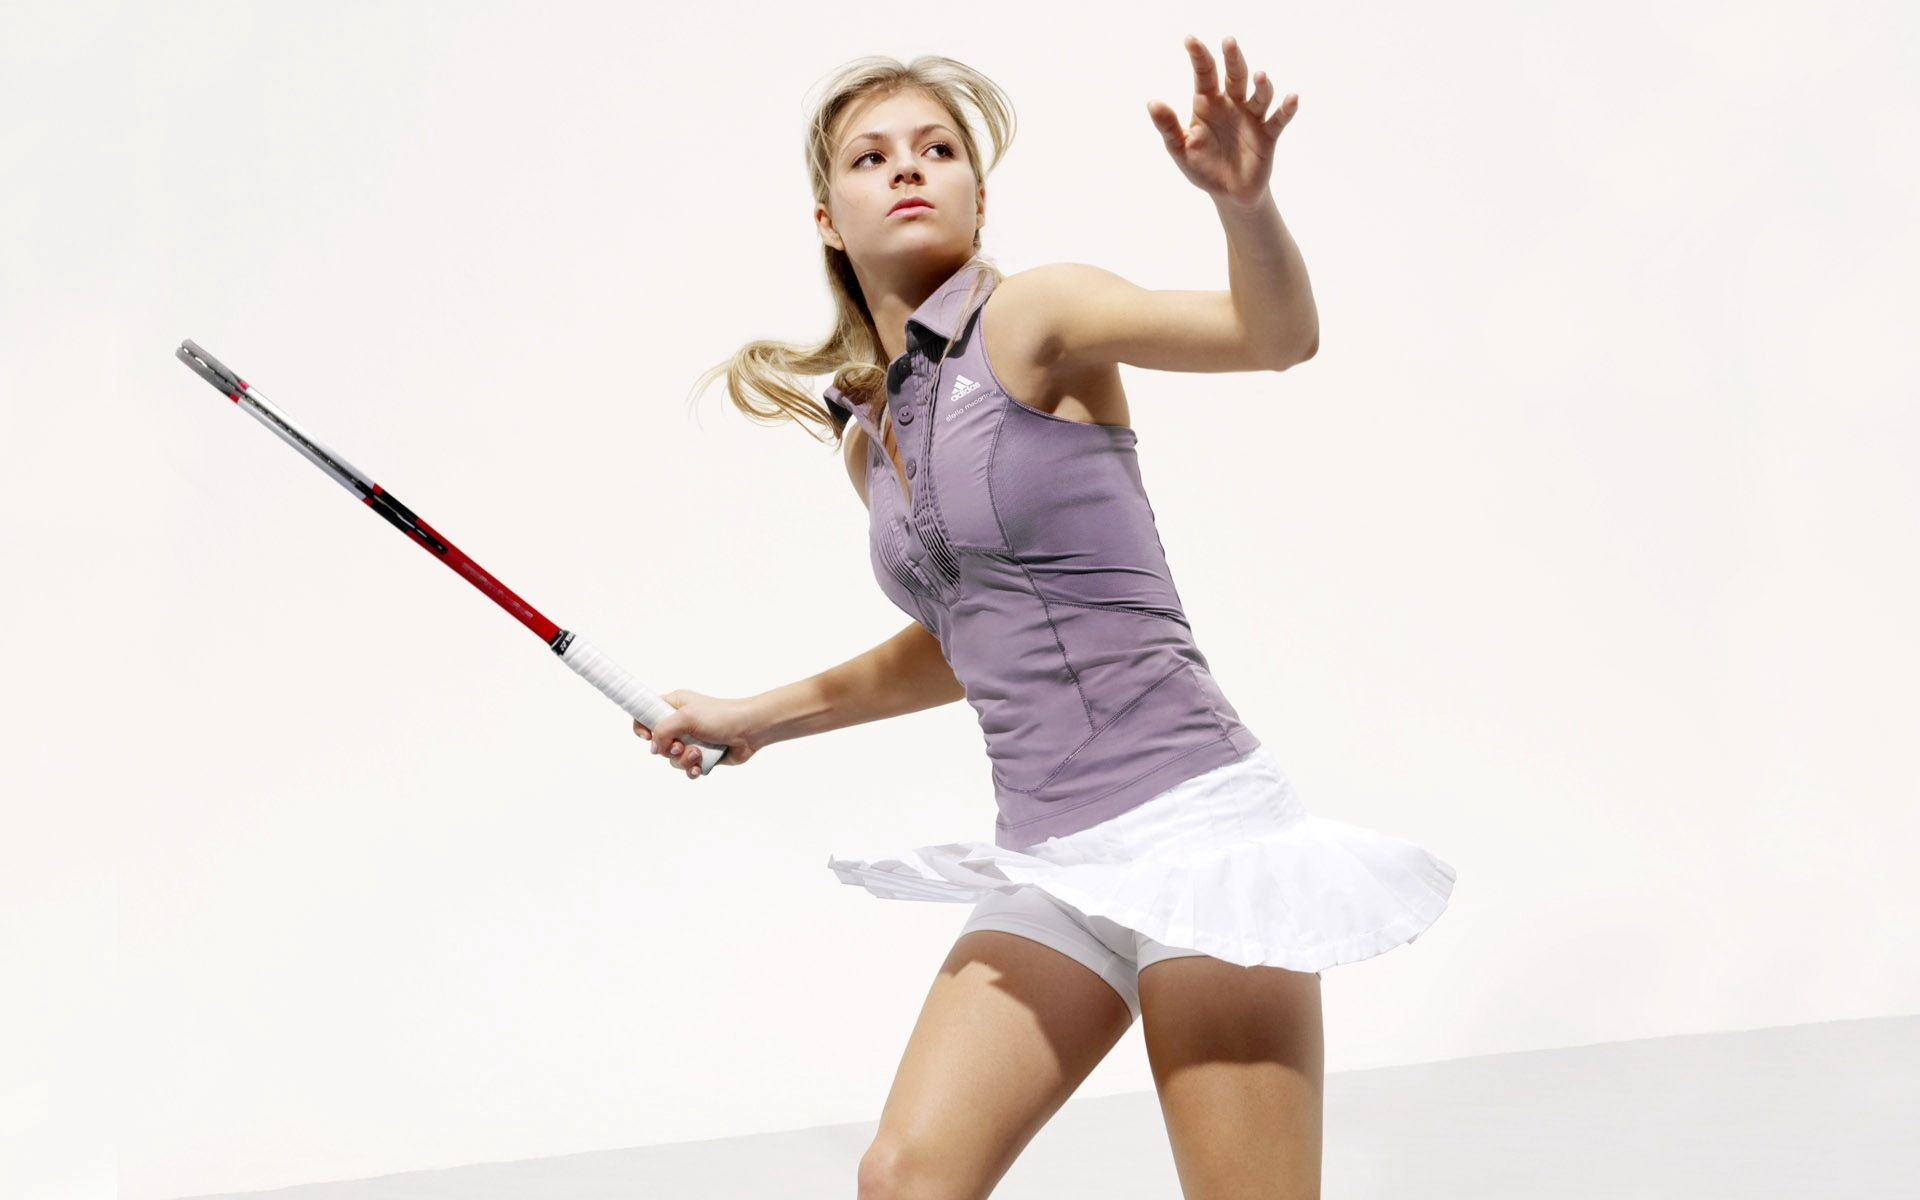 Maria Kirilenko Wallpaper